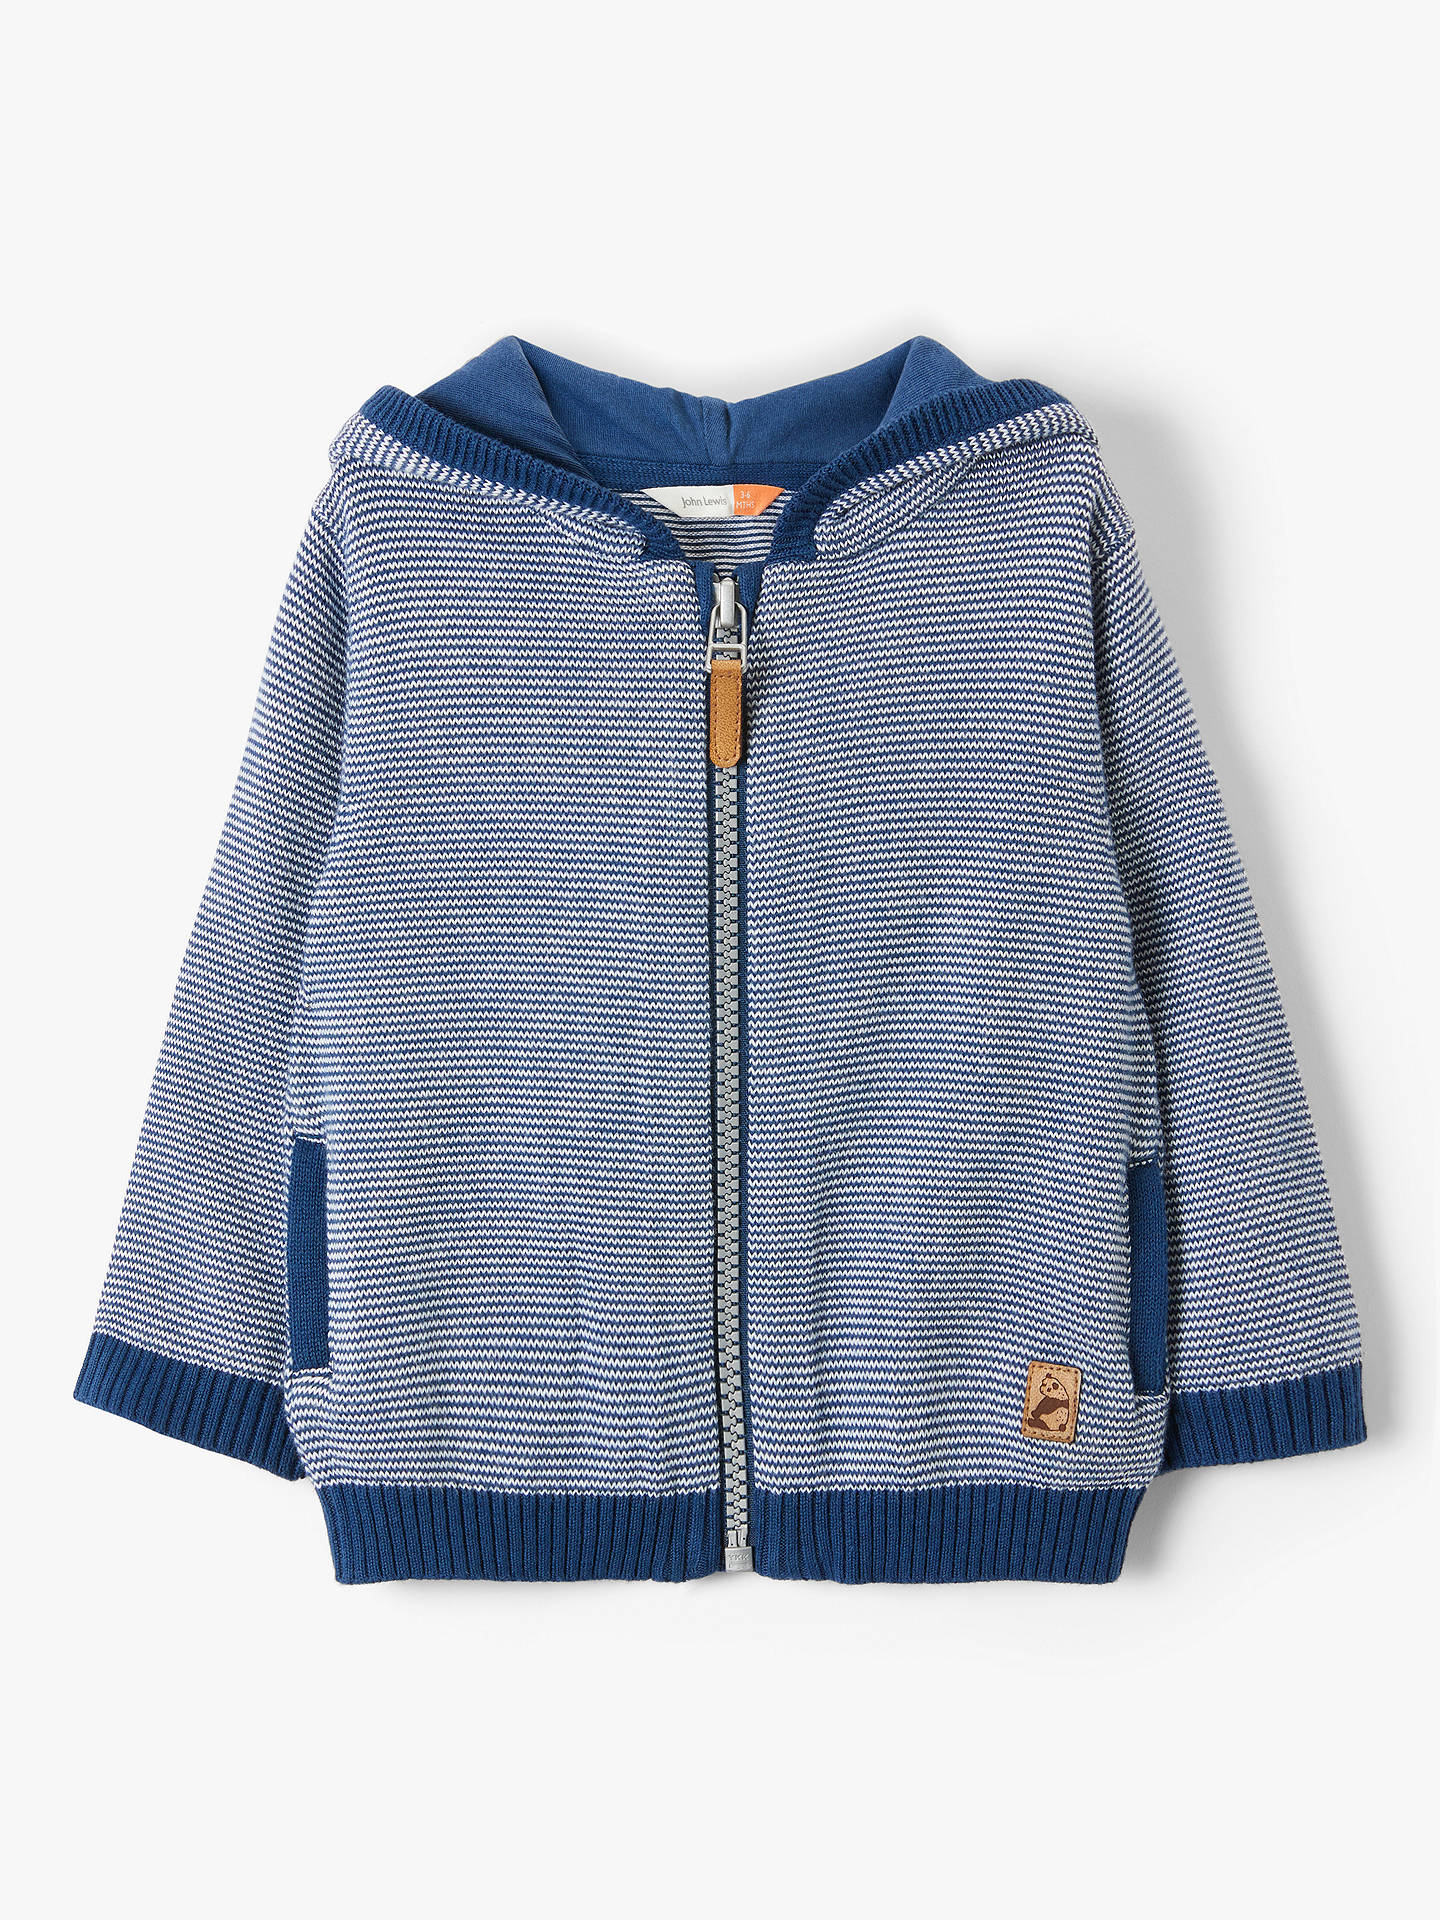 cdfc3001c7f2 BuyJohn Lewis & Partners Baby Organic Cotton Stripe Knitted Hoodie, Blue,  9-12 ...